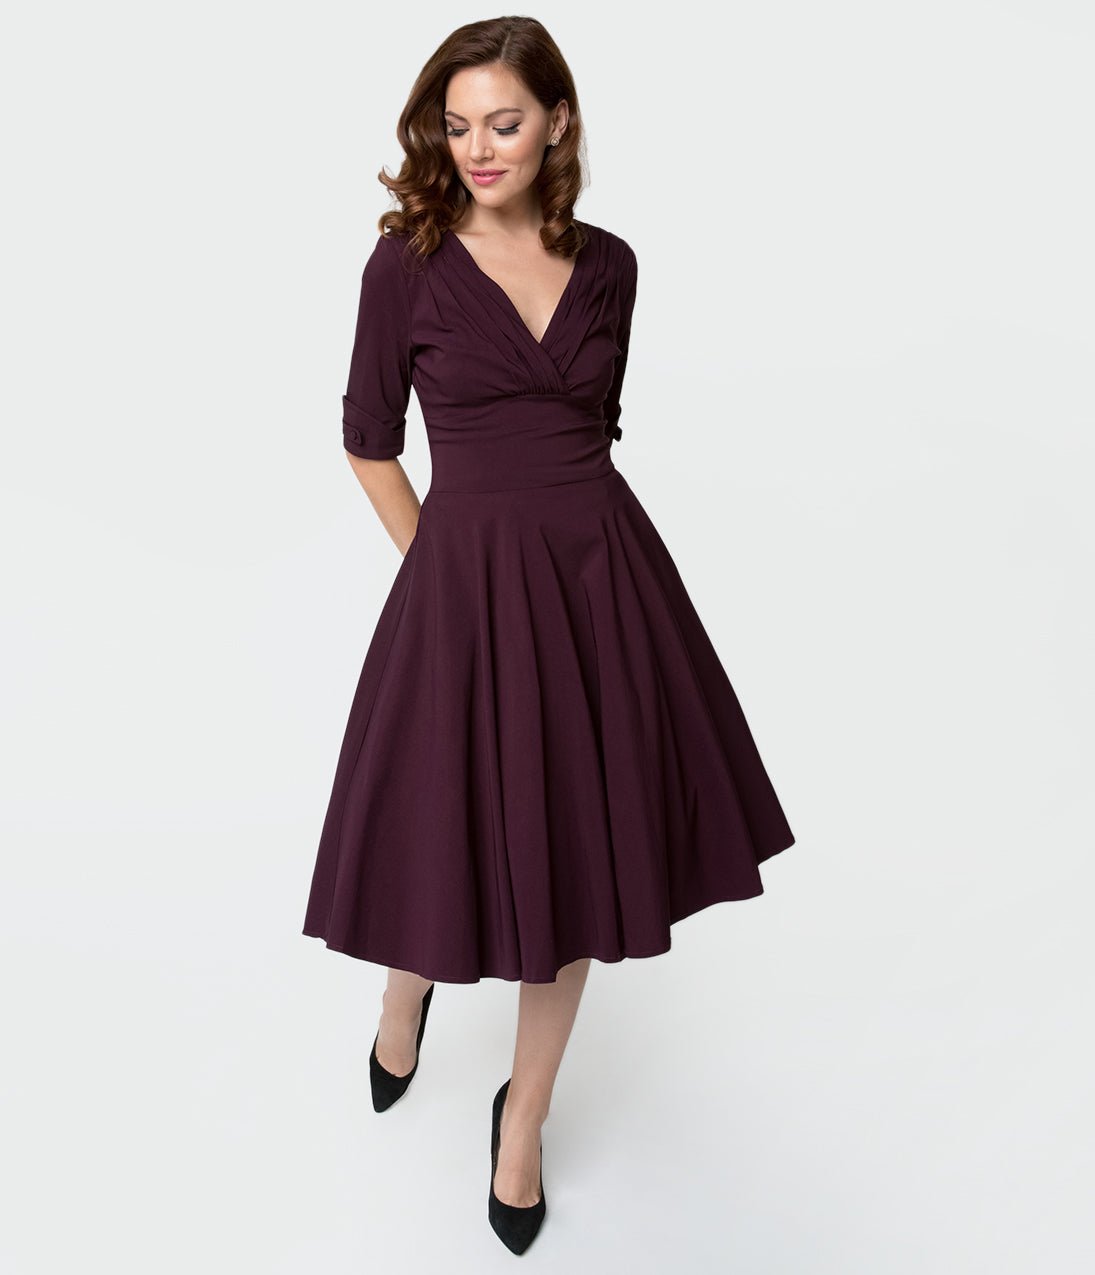 1950s Dresses, 50s Dresses | 1950s Style Dresses Unique Vintage 1950S Eggplant Purple Delores Swing Dress With Sleeves $88.00 AT vintagedancer.com